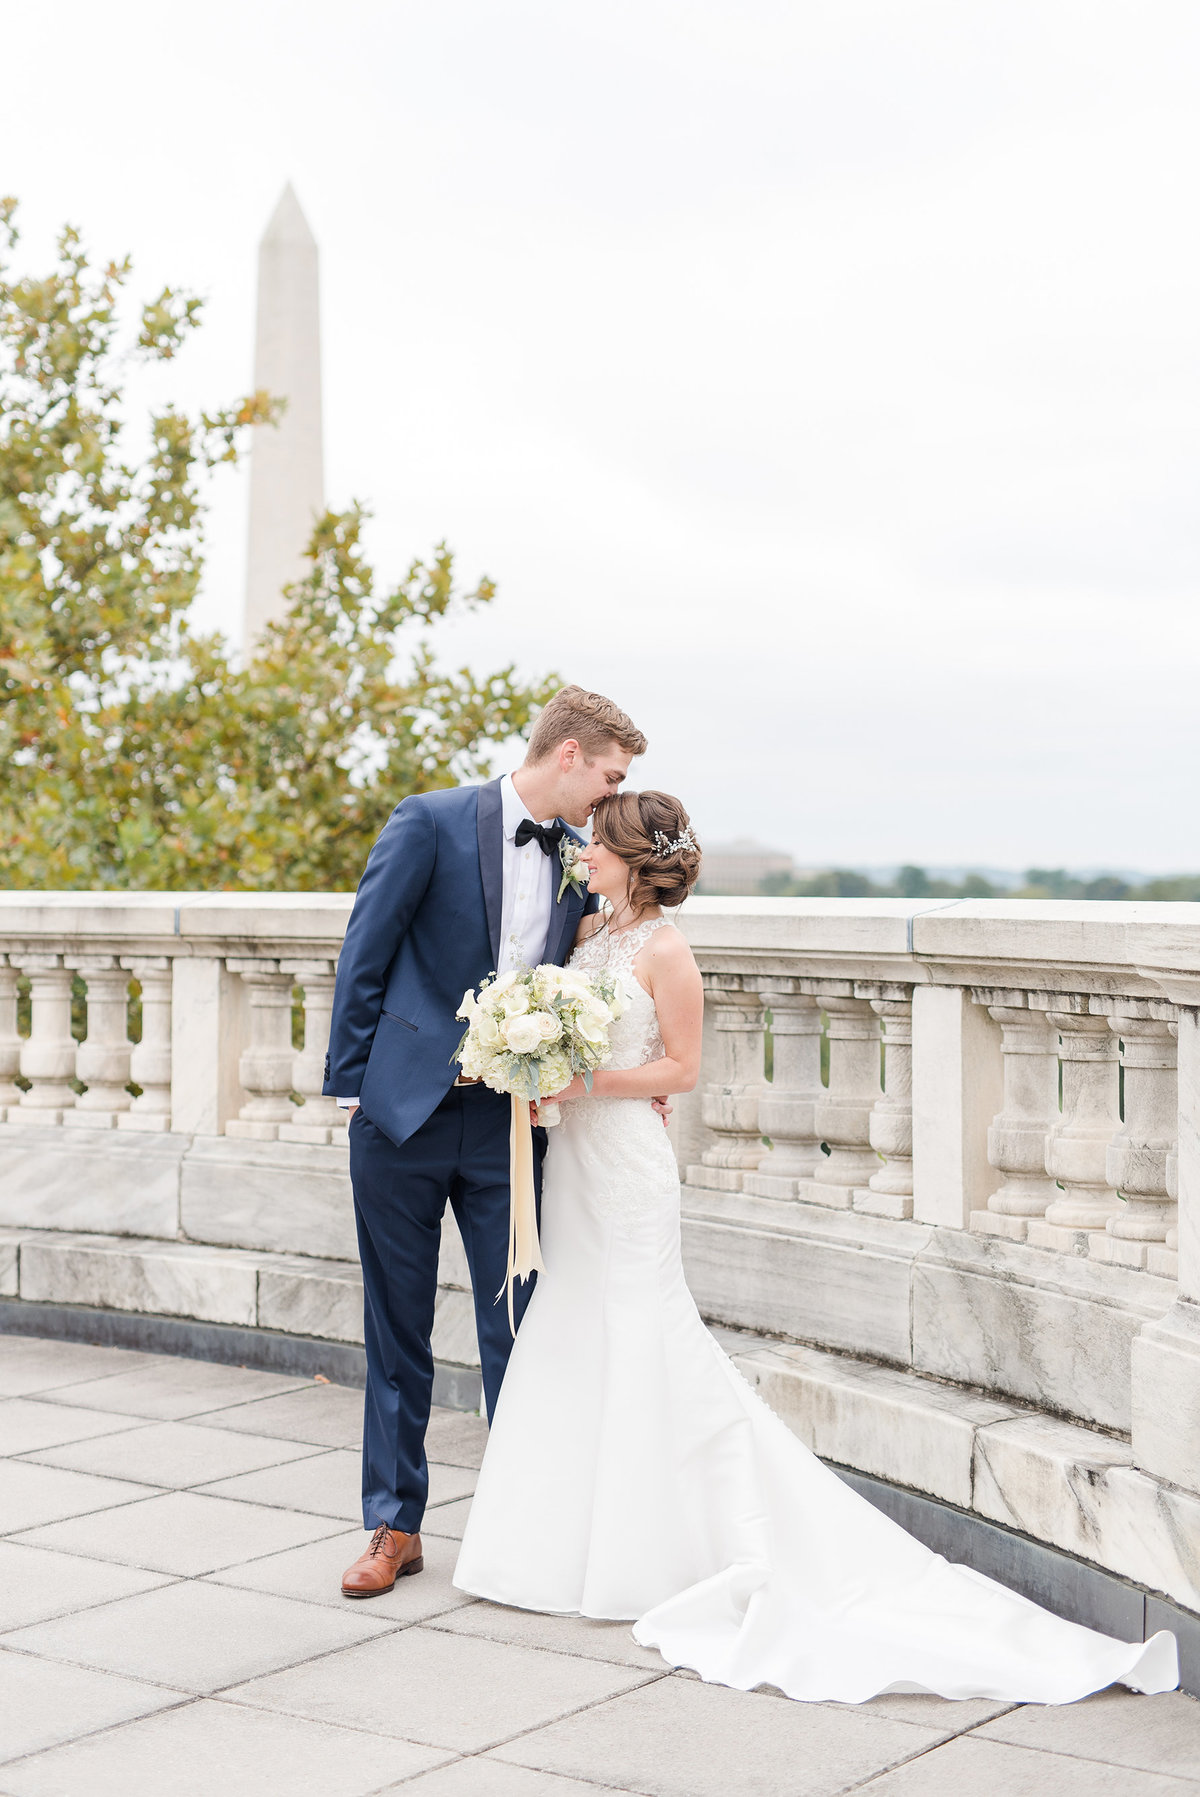 dar-first-look-wedding-photos-washington-dc-monument-rooftop-wedding-venue-photo